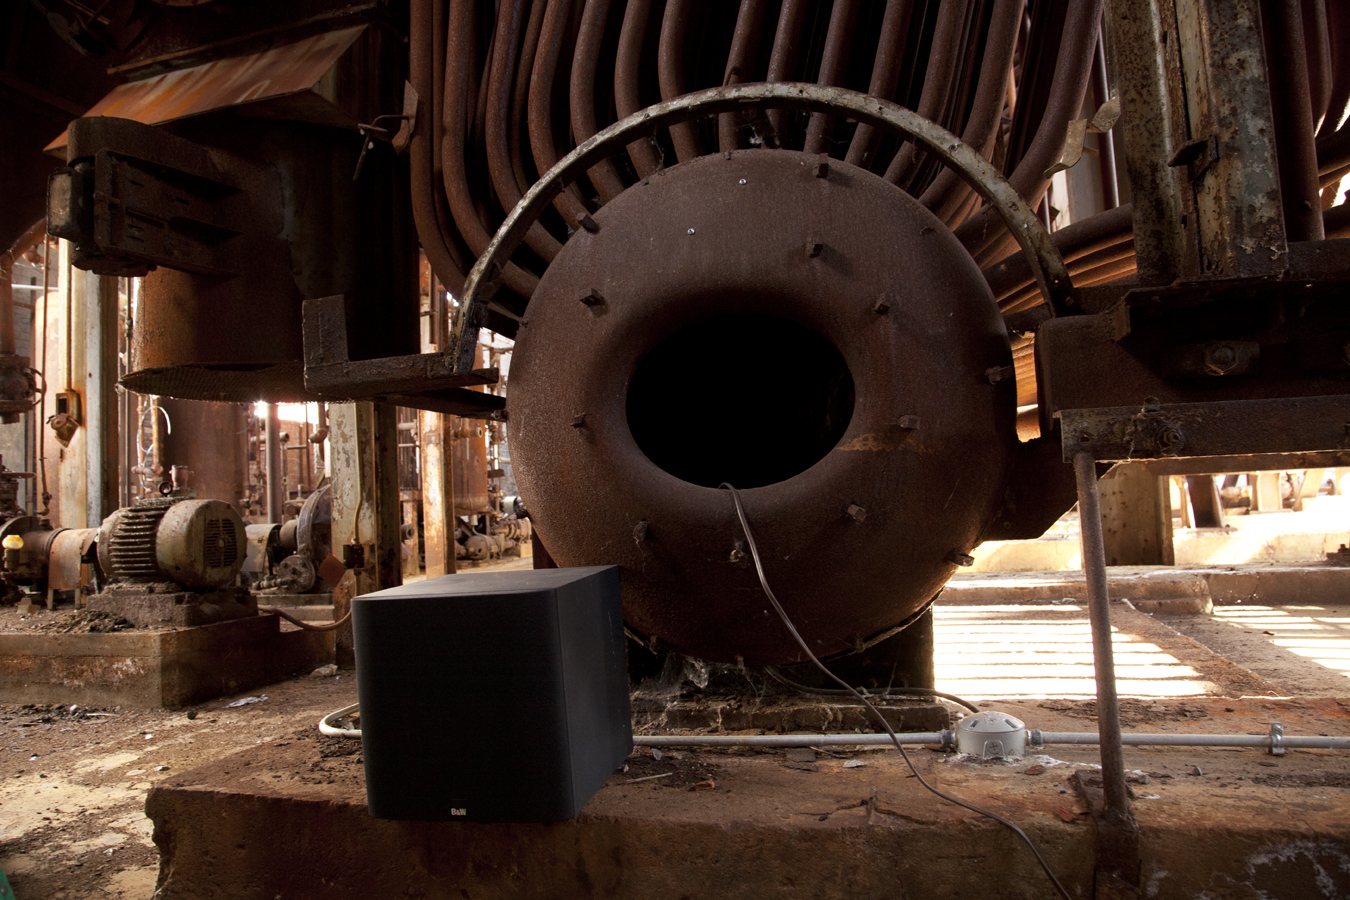 A photo of a large iron machinery with a speaker in front of it.